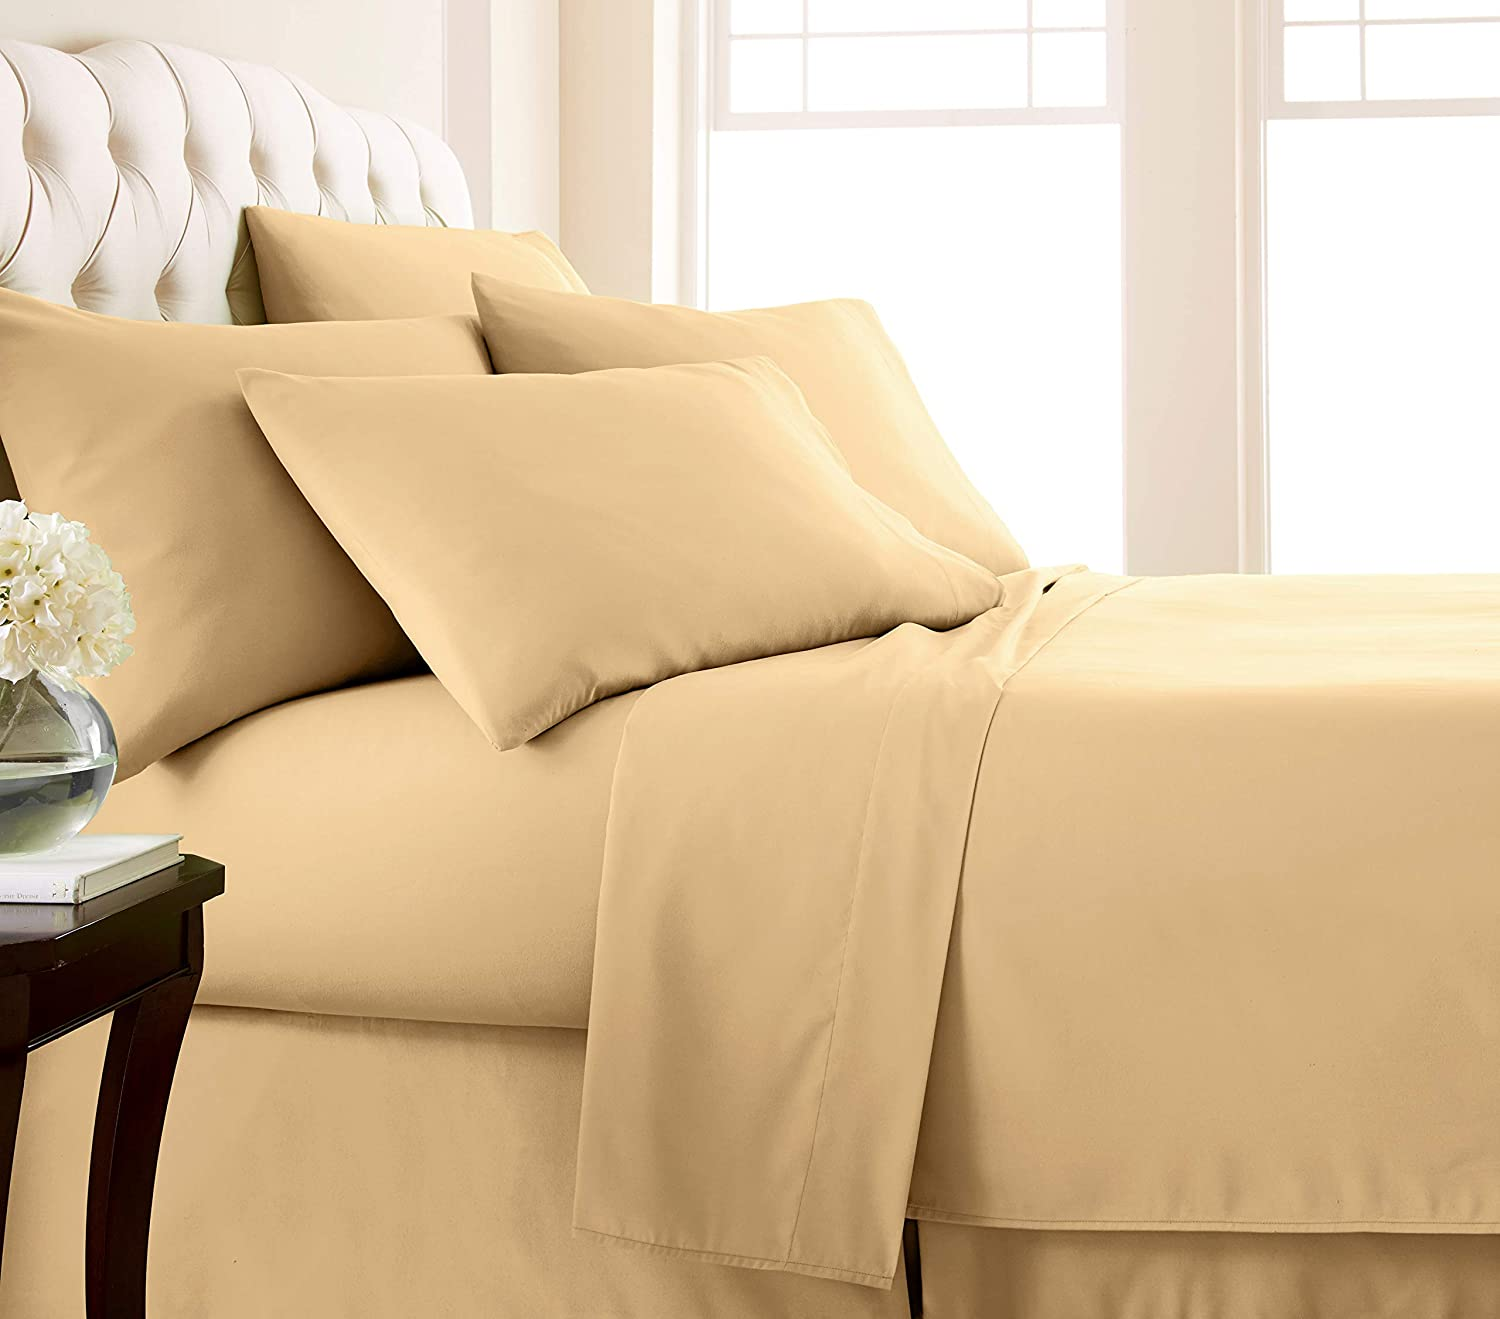 Southshore Fine Living, Inc. Vilano Springs - Premium Collection 6-Piece, 21 Inch Extra-Deep Pocket Sheet Sets, Gold, California King